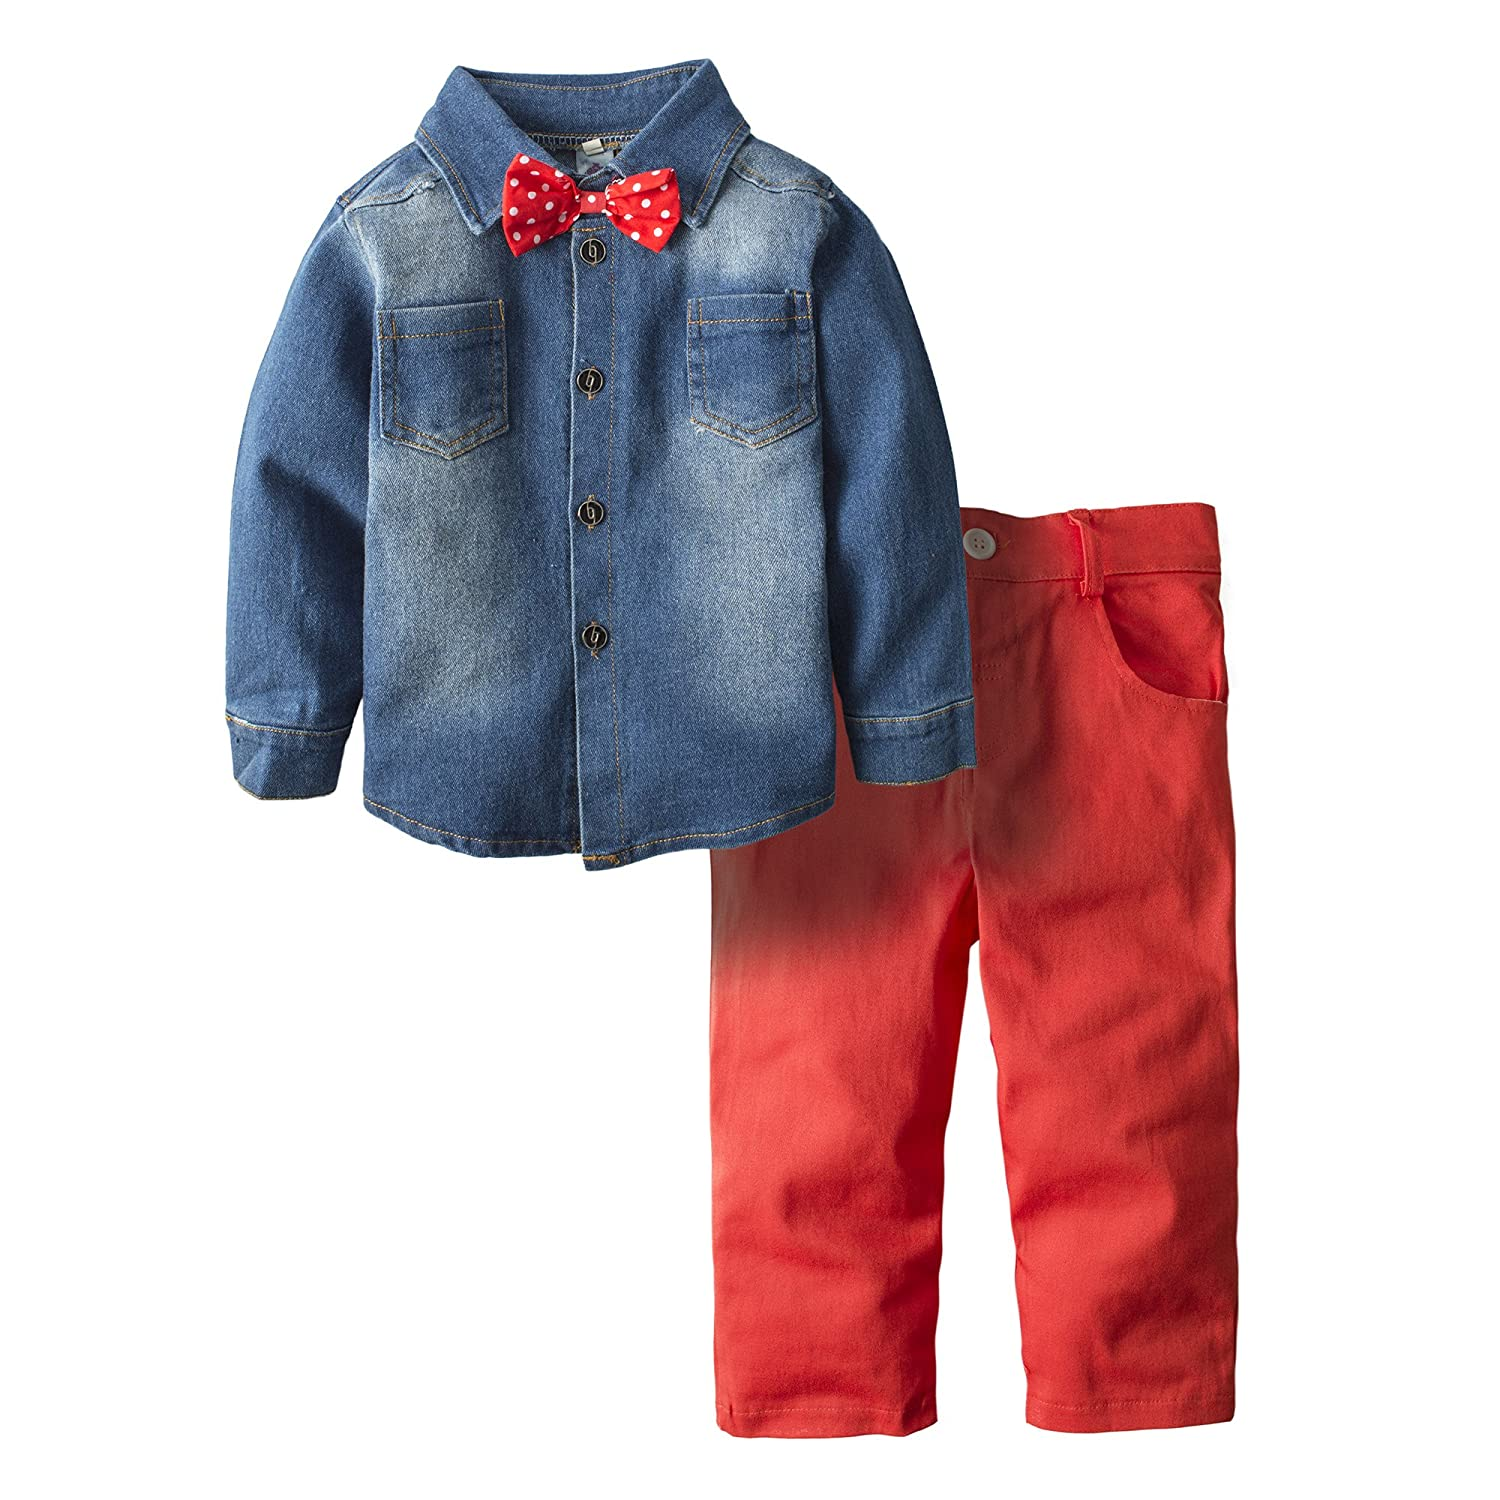 Big Elephant Boys' 2 Piece Cowboy Long Sleeve Jeans Outfit Denim Clothing Set H18C